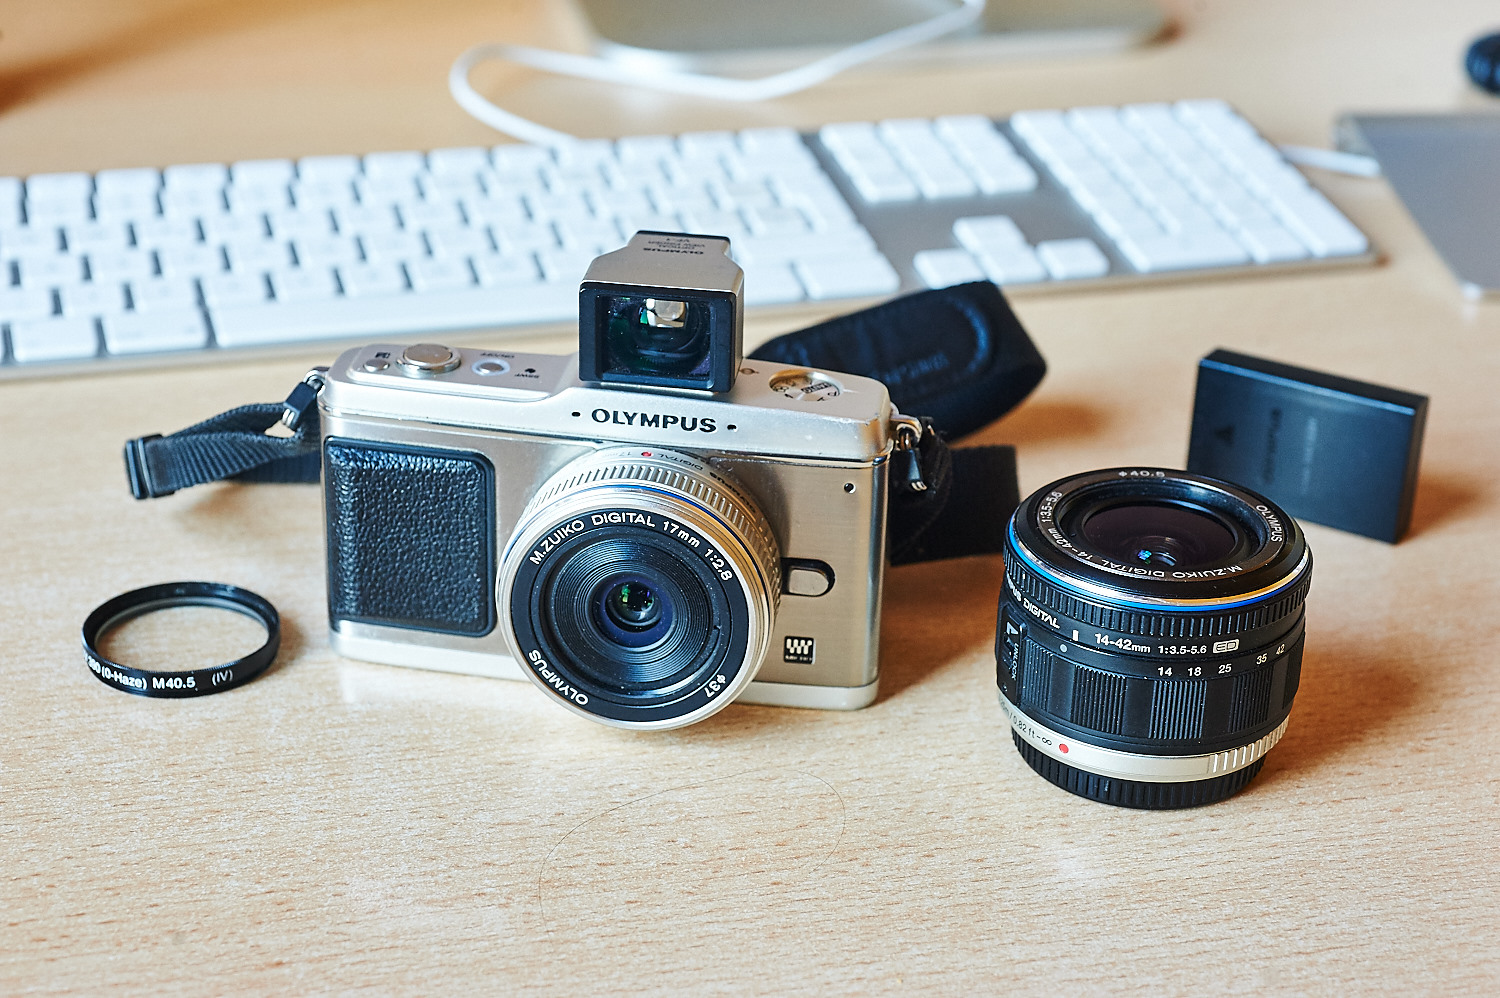 Olympus E-P1 for sale